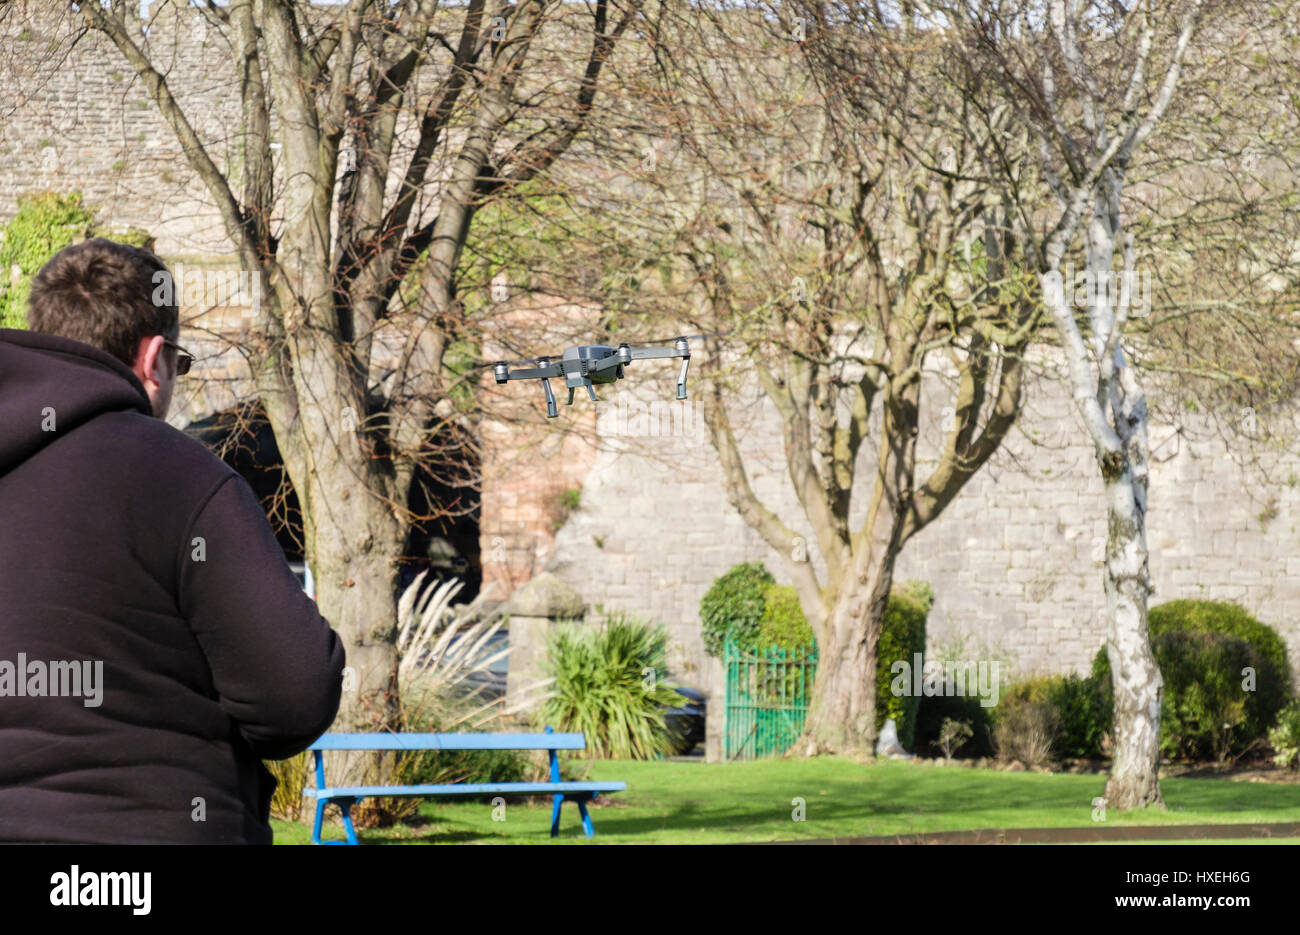 Man flying a radio controlled small toy drone in a park. Conwy, Wales, UK, Britain - Stock Image